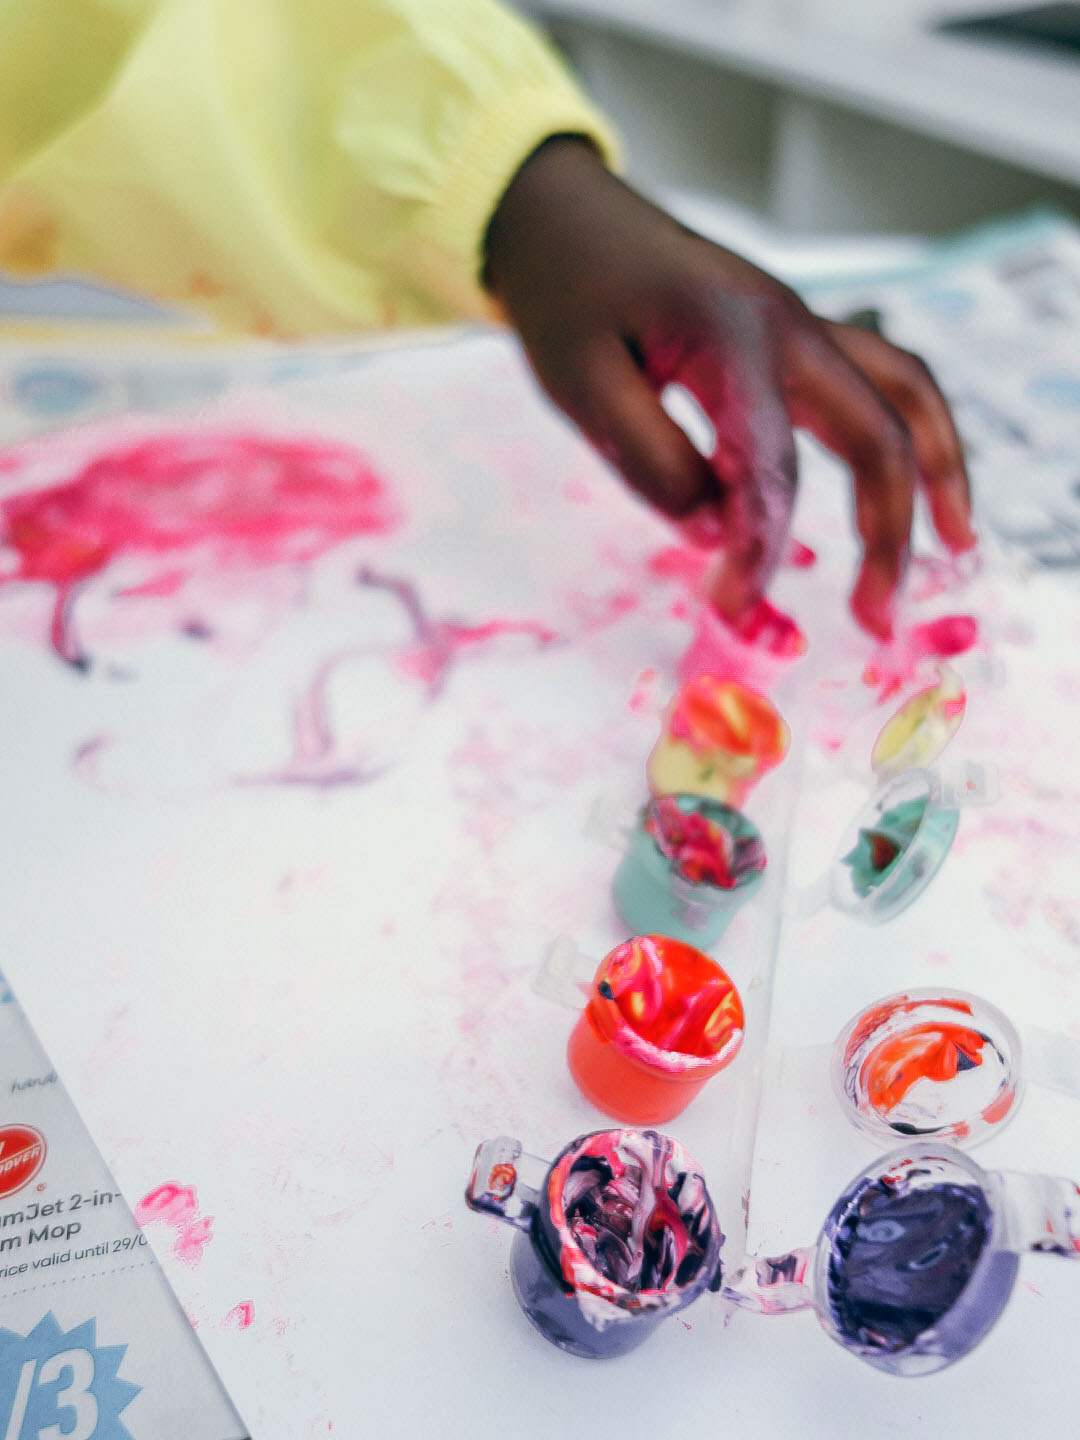 Experts say that creative play is anything that satisfies the need for self-expression as well as develop manual skills. Painting and making things is an excellent activity during quarantine!